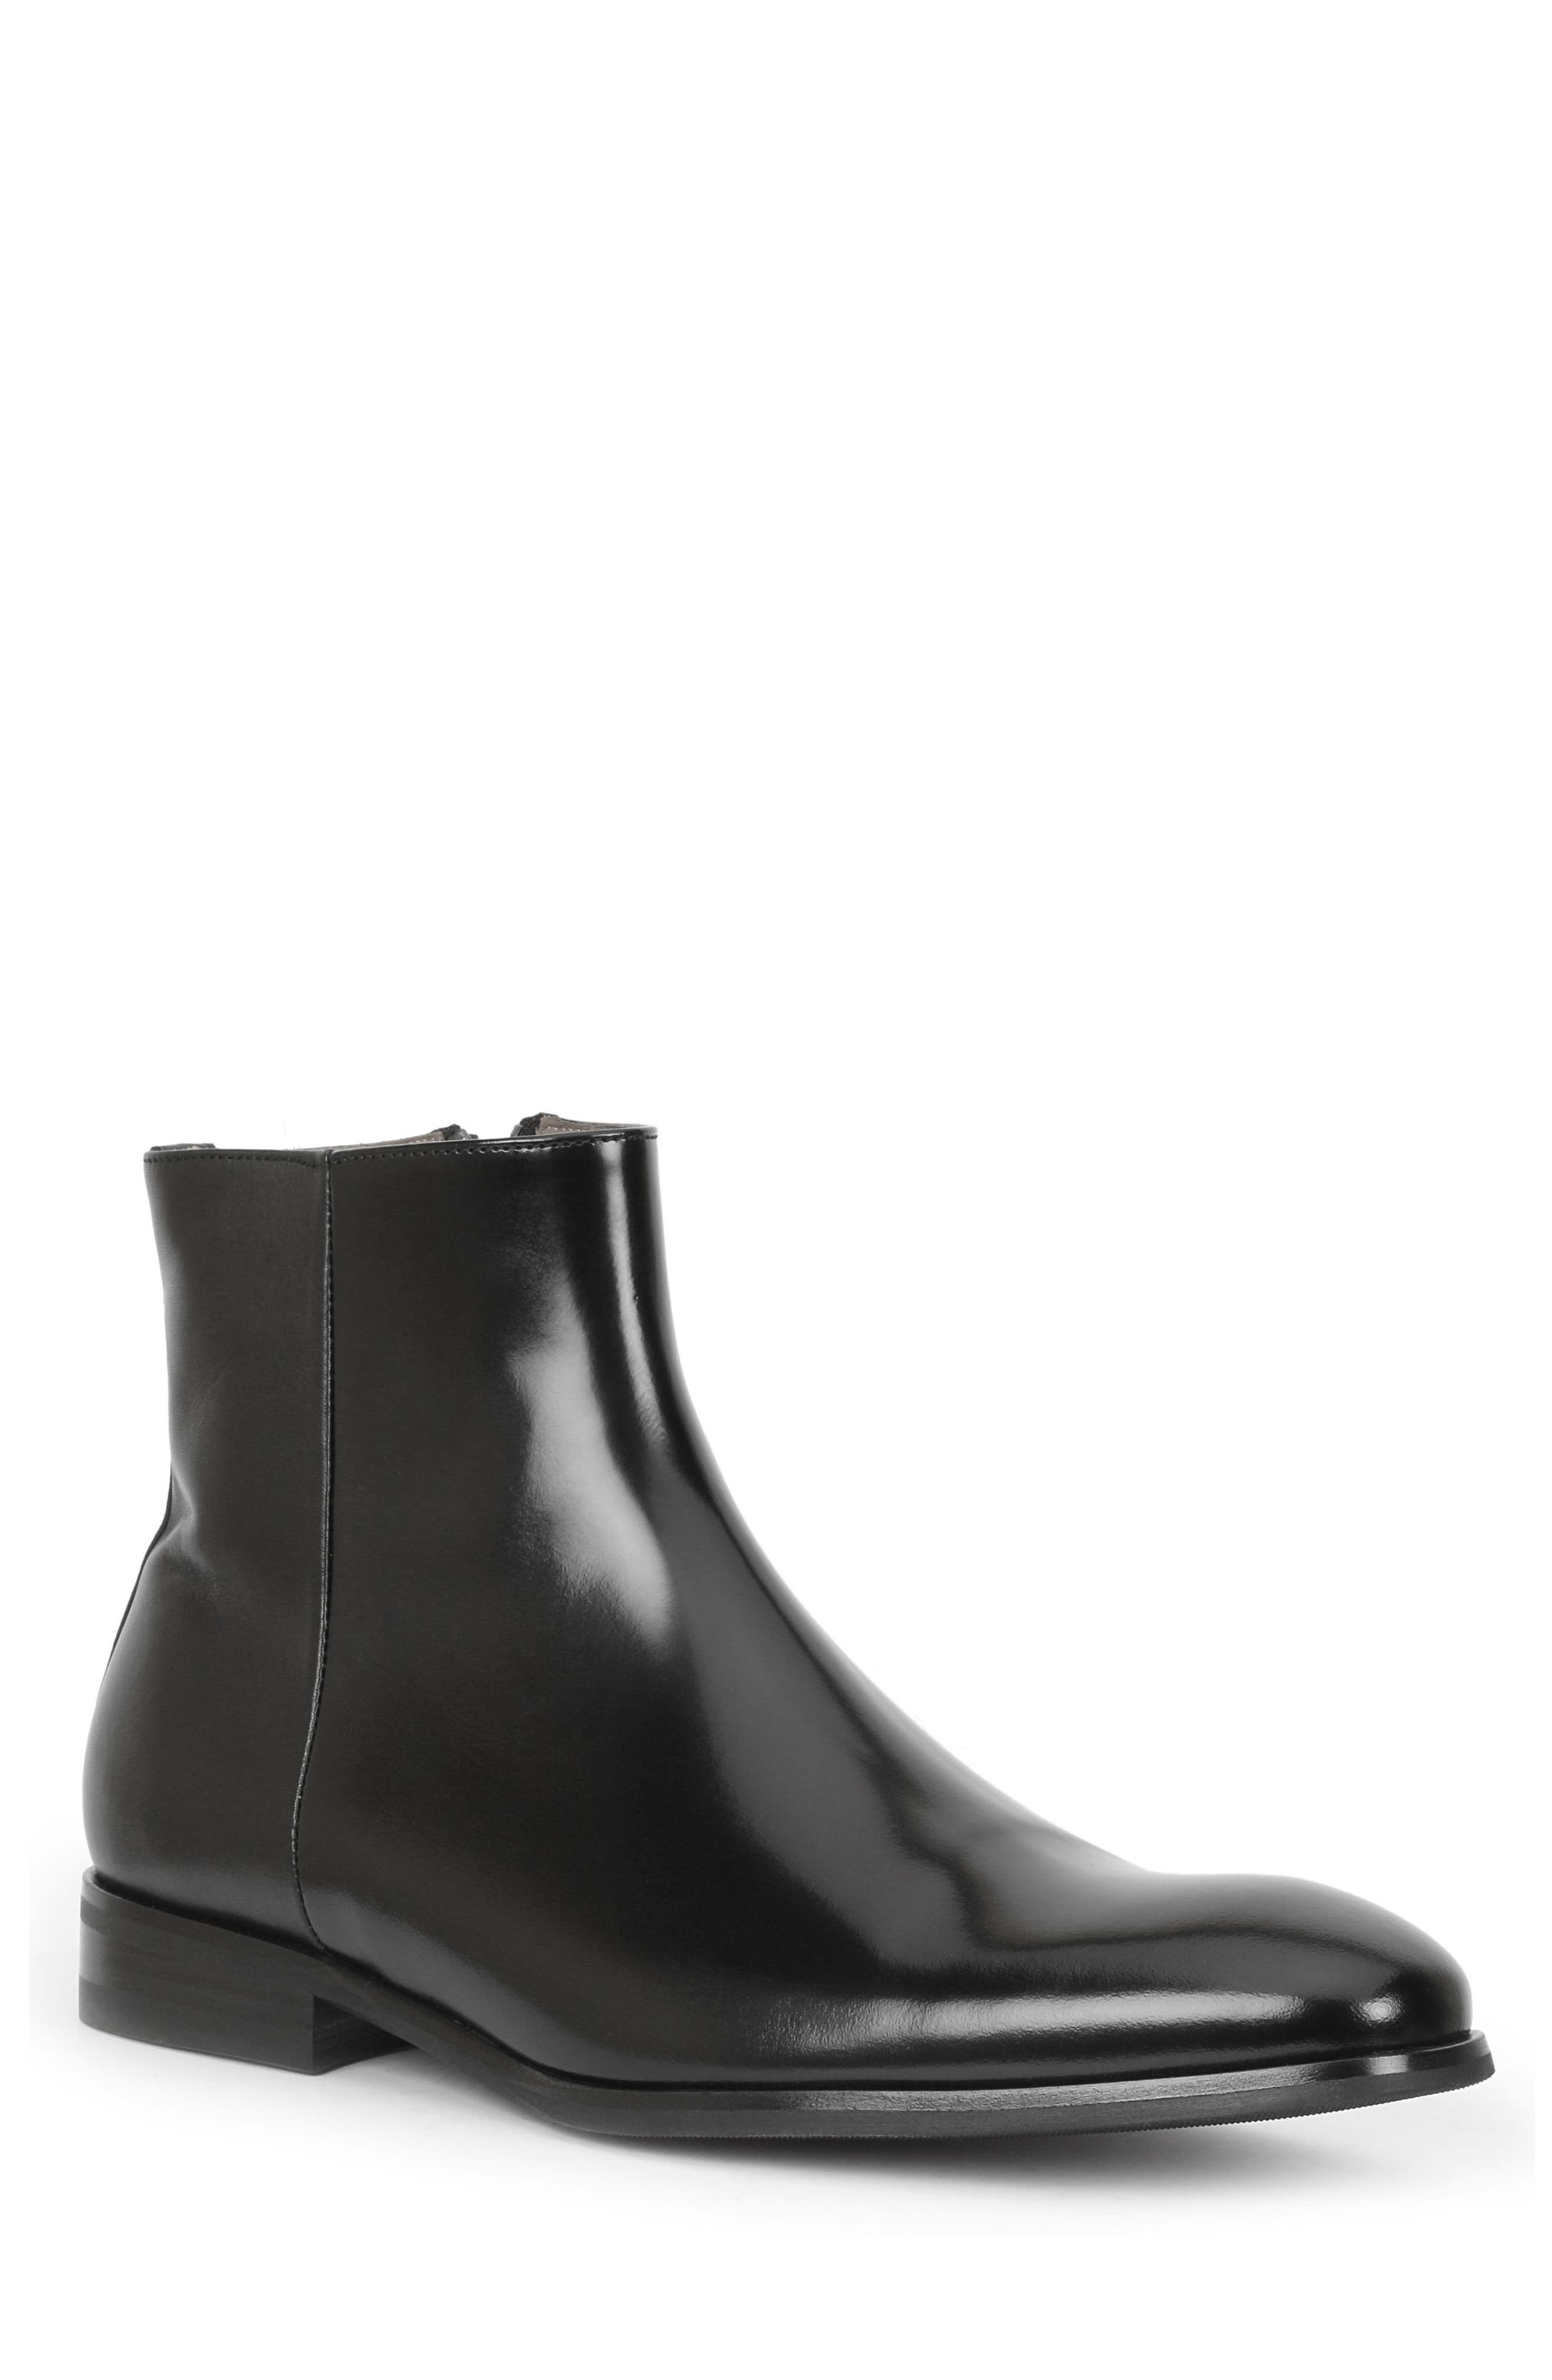 Nuncio Zip Boot,                         Main,                         color, Black Leather